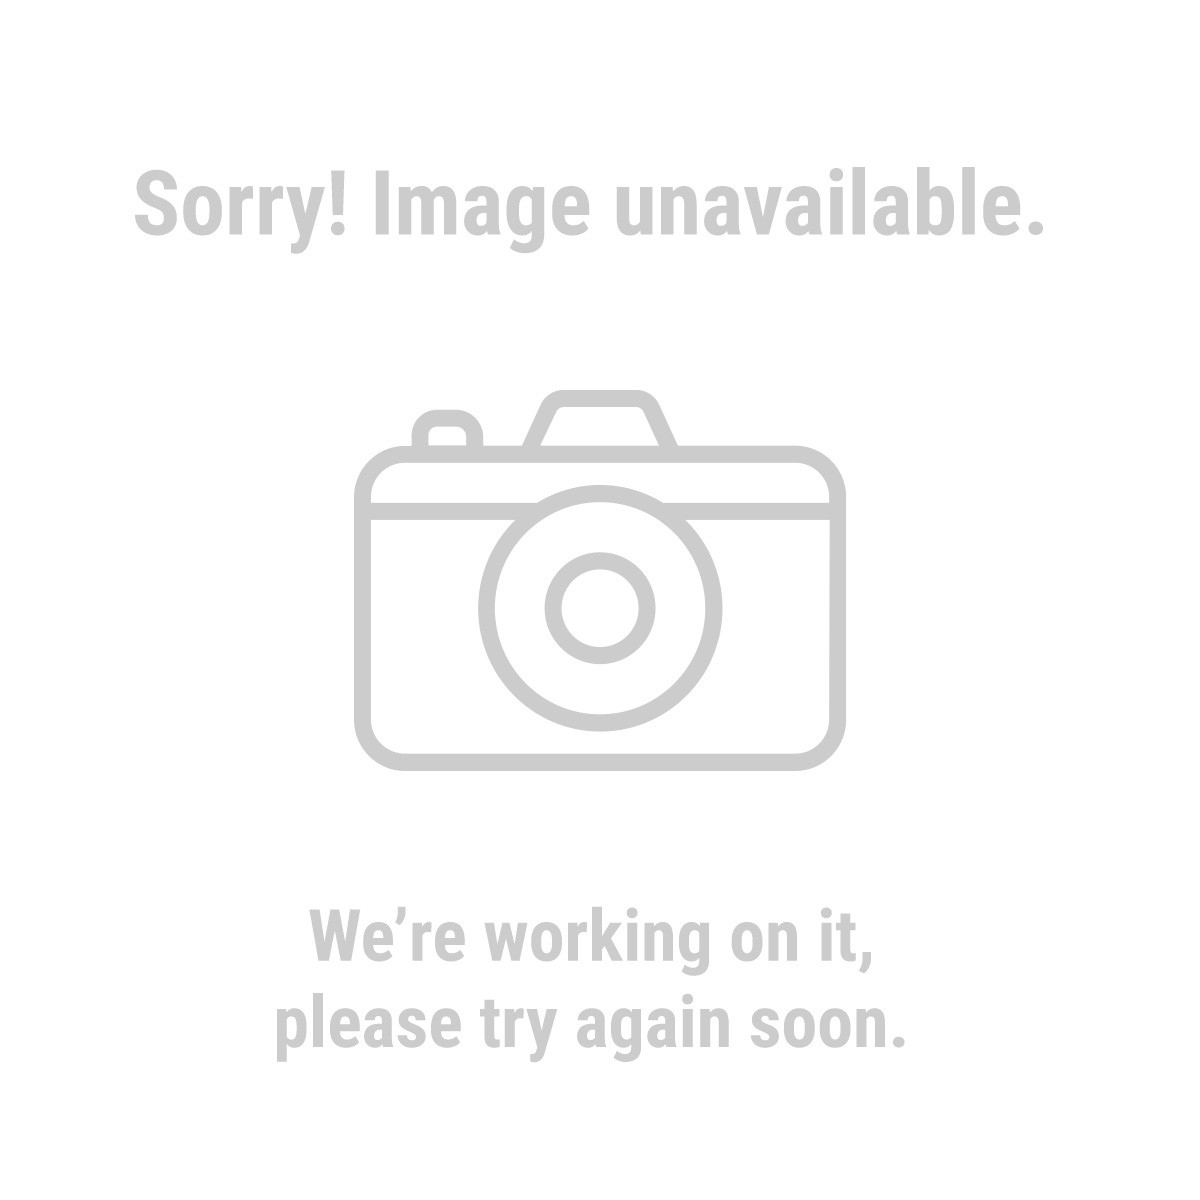 HFT® 61909 50 ft. x 16 Gauge Outdoor Extension Cord